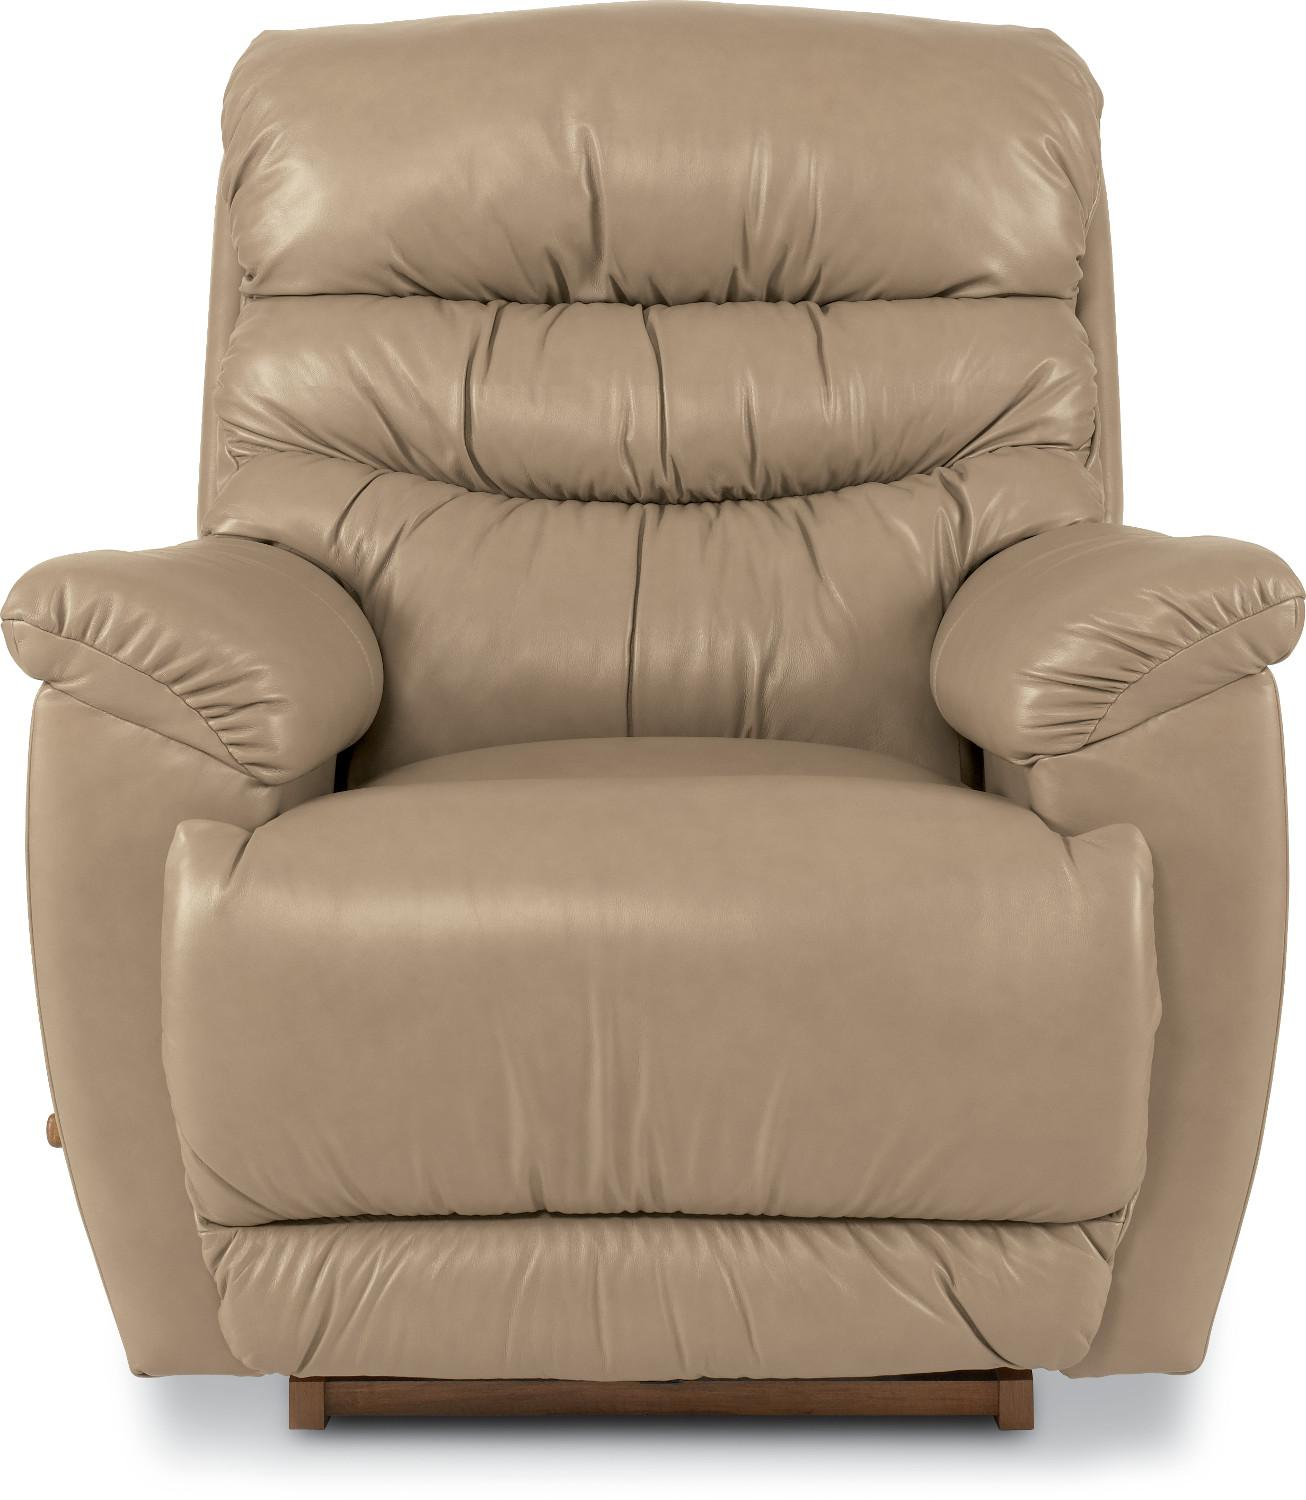 Joshua Reclina-Rocker Reclining Chair